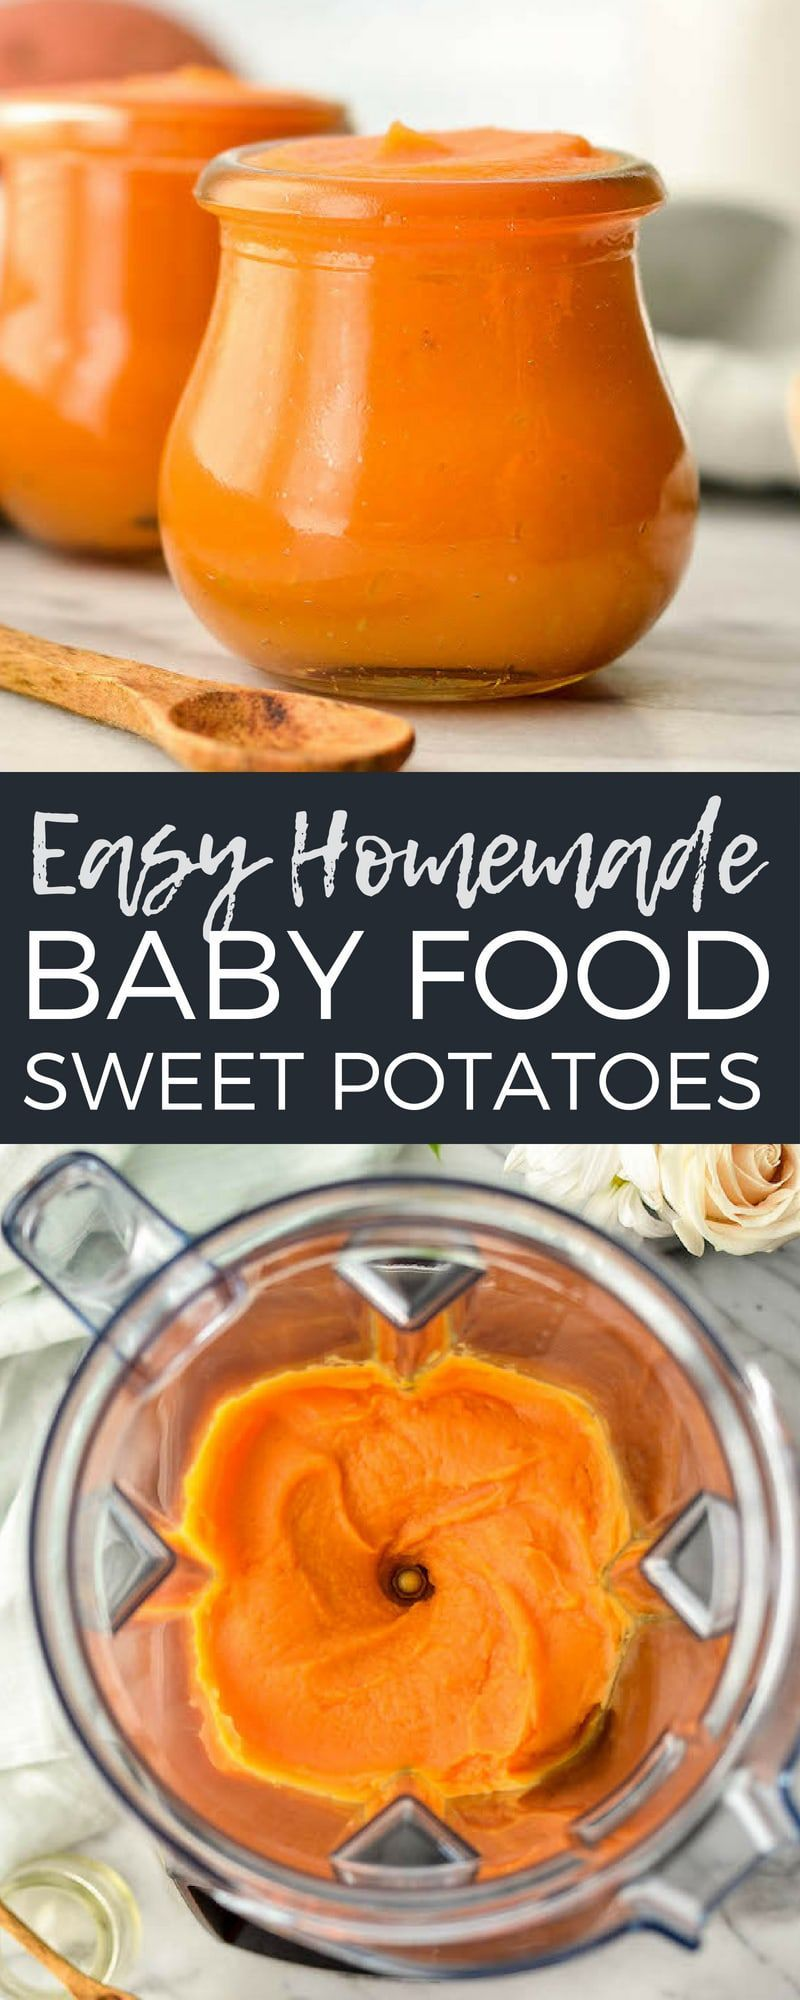 Easy Homemade Sweet Potato Baby Food! This recipe has only ...